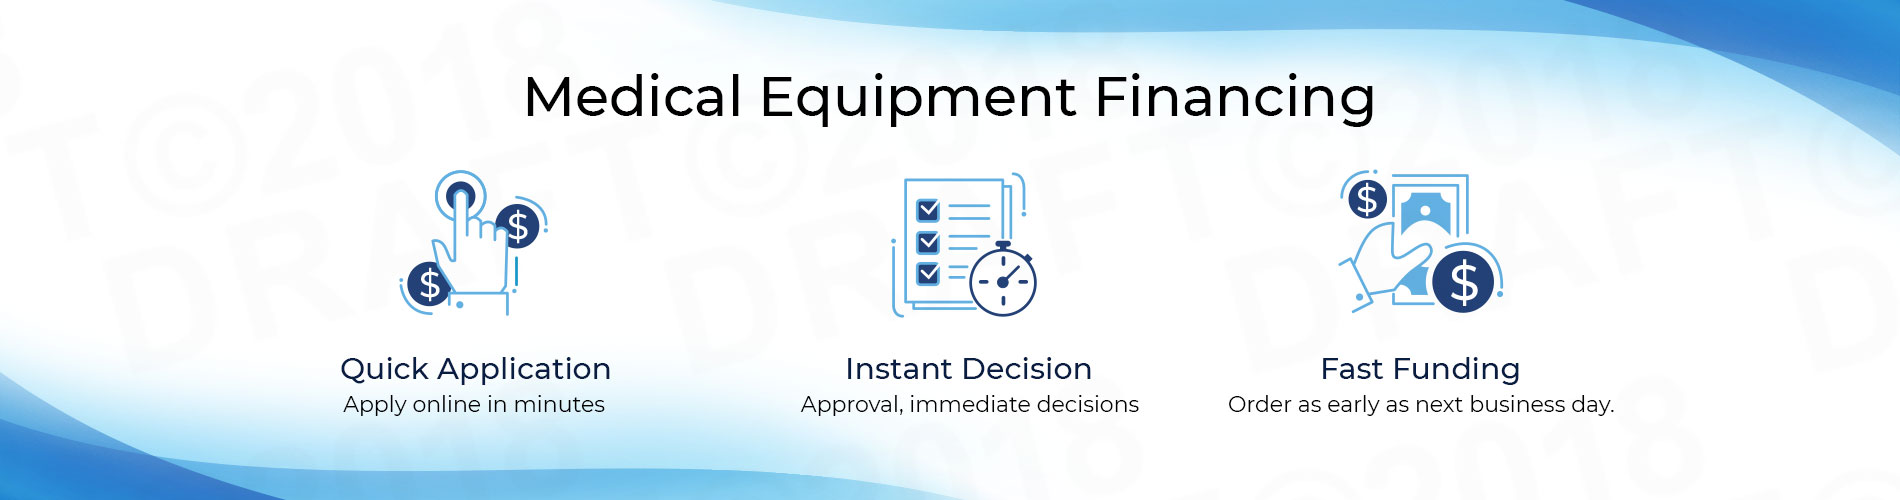 Medical Equipment Financing | Finance Cosmetic Lasers | Low